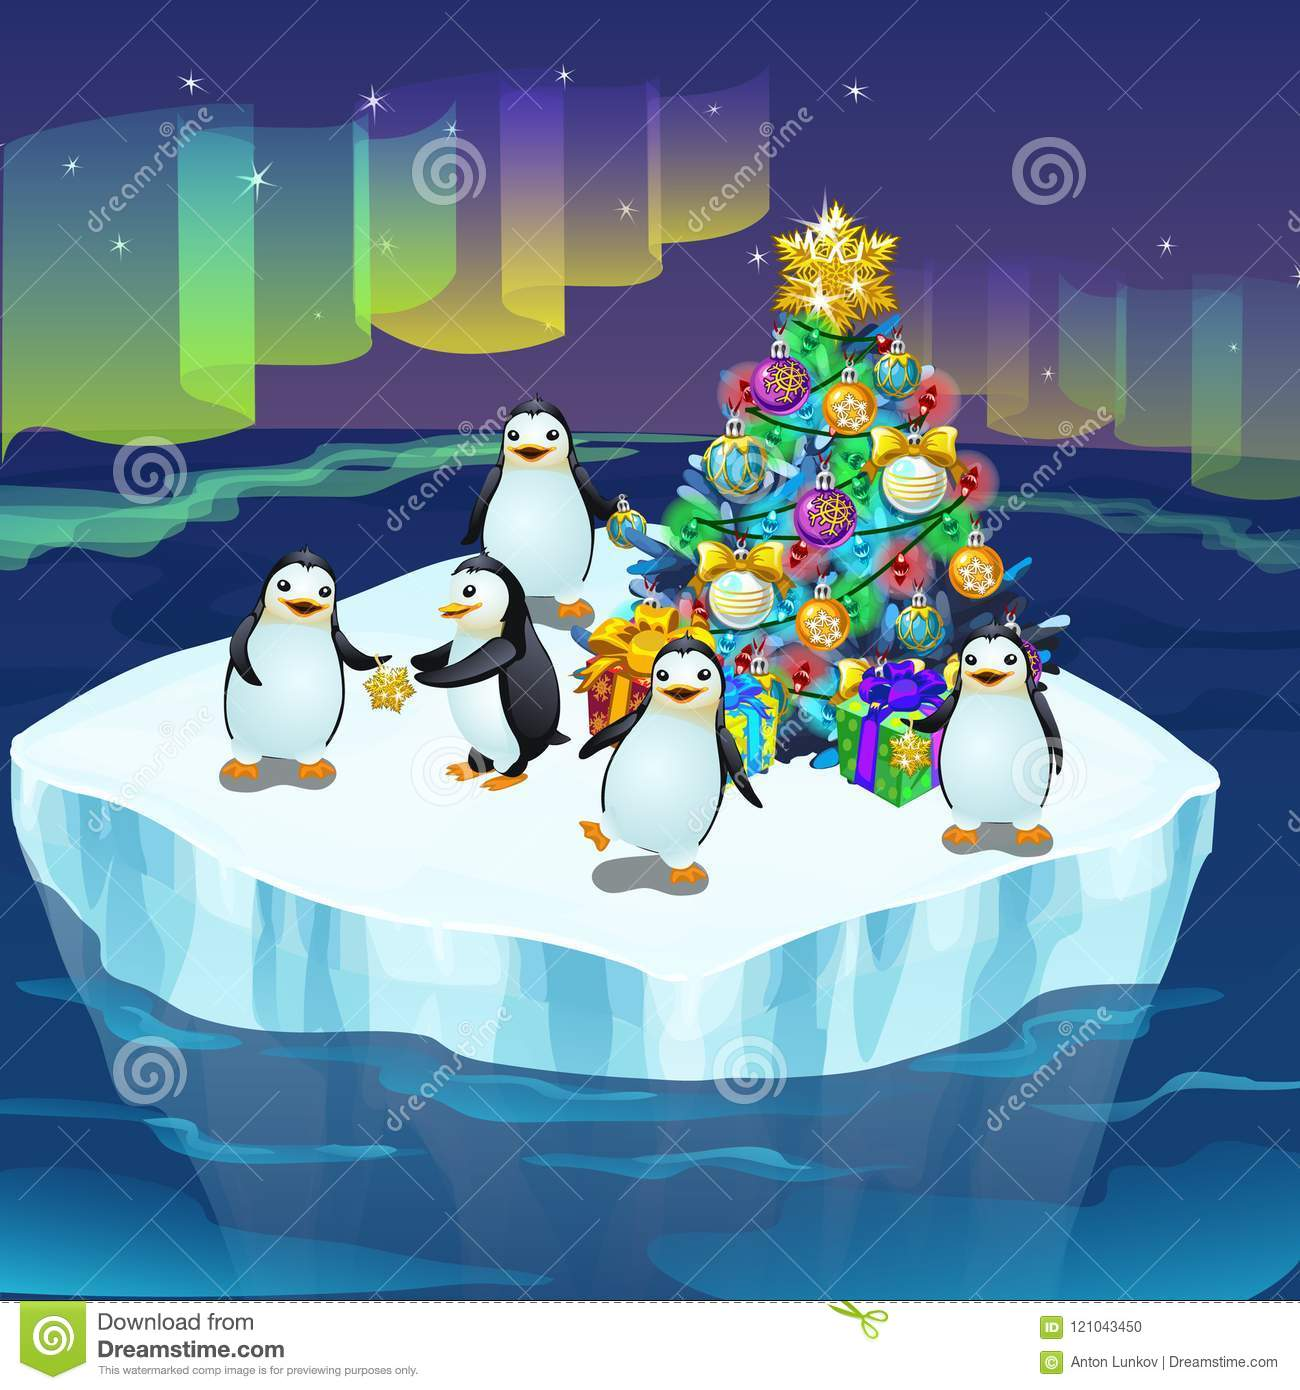 Little Cute Penguins On An Ice Floe Decorate A Christmas Tree A Poster On The Theme Of The New Year Vector Stock Vector Illustration Of Aurora Christmas 121043450